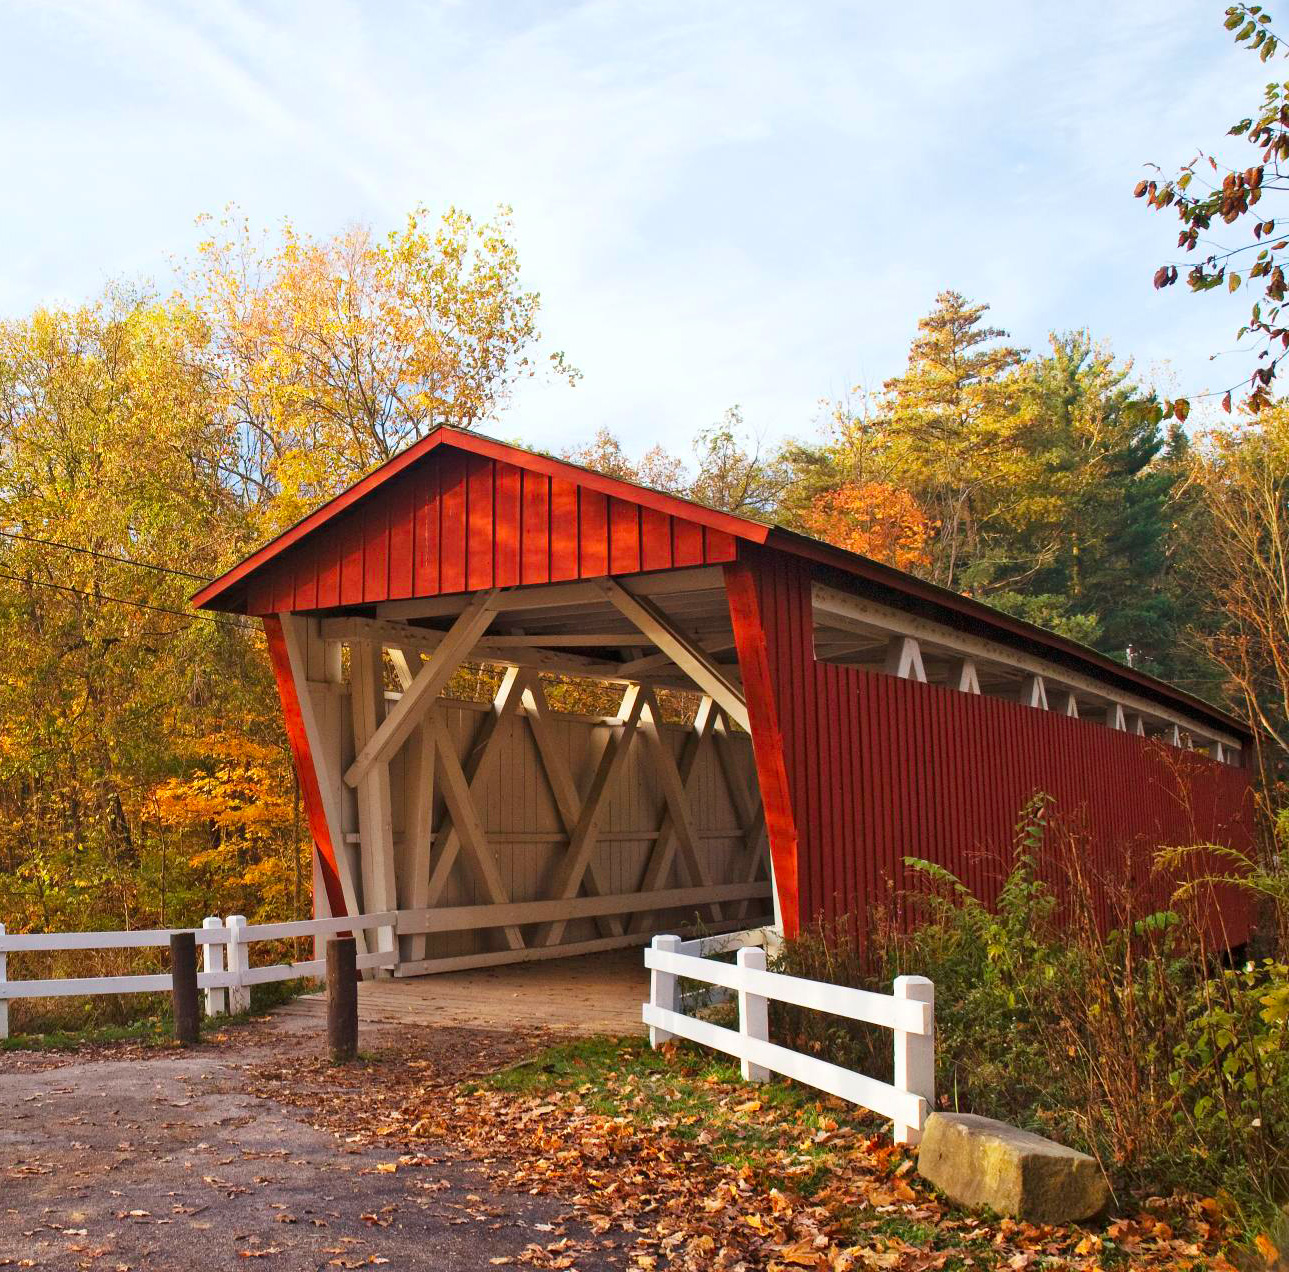 Everett Road Covered Bridge is in Cuyahoga Valley National Park.